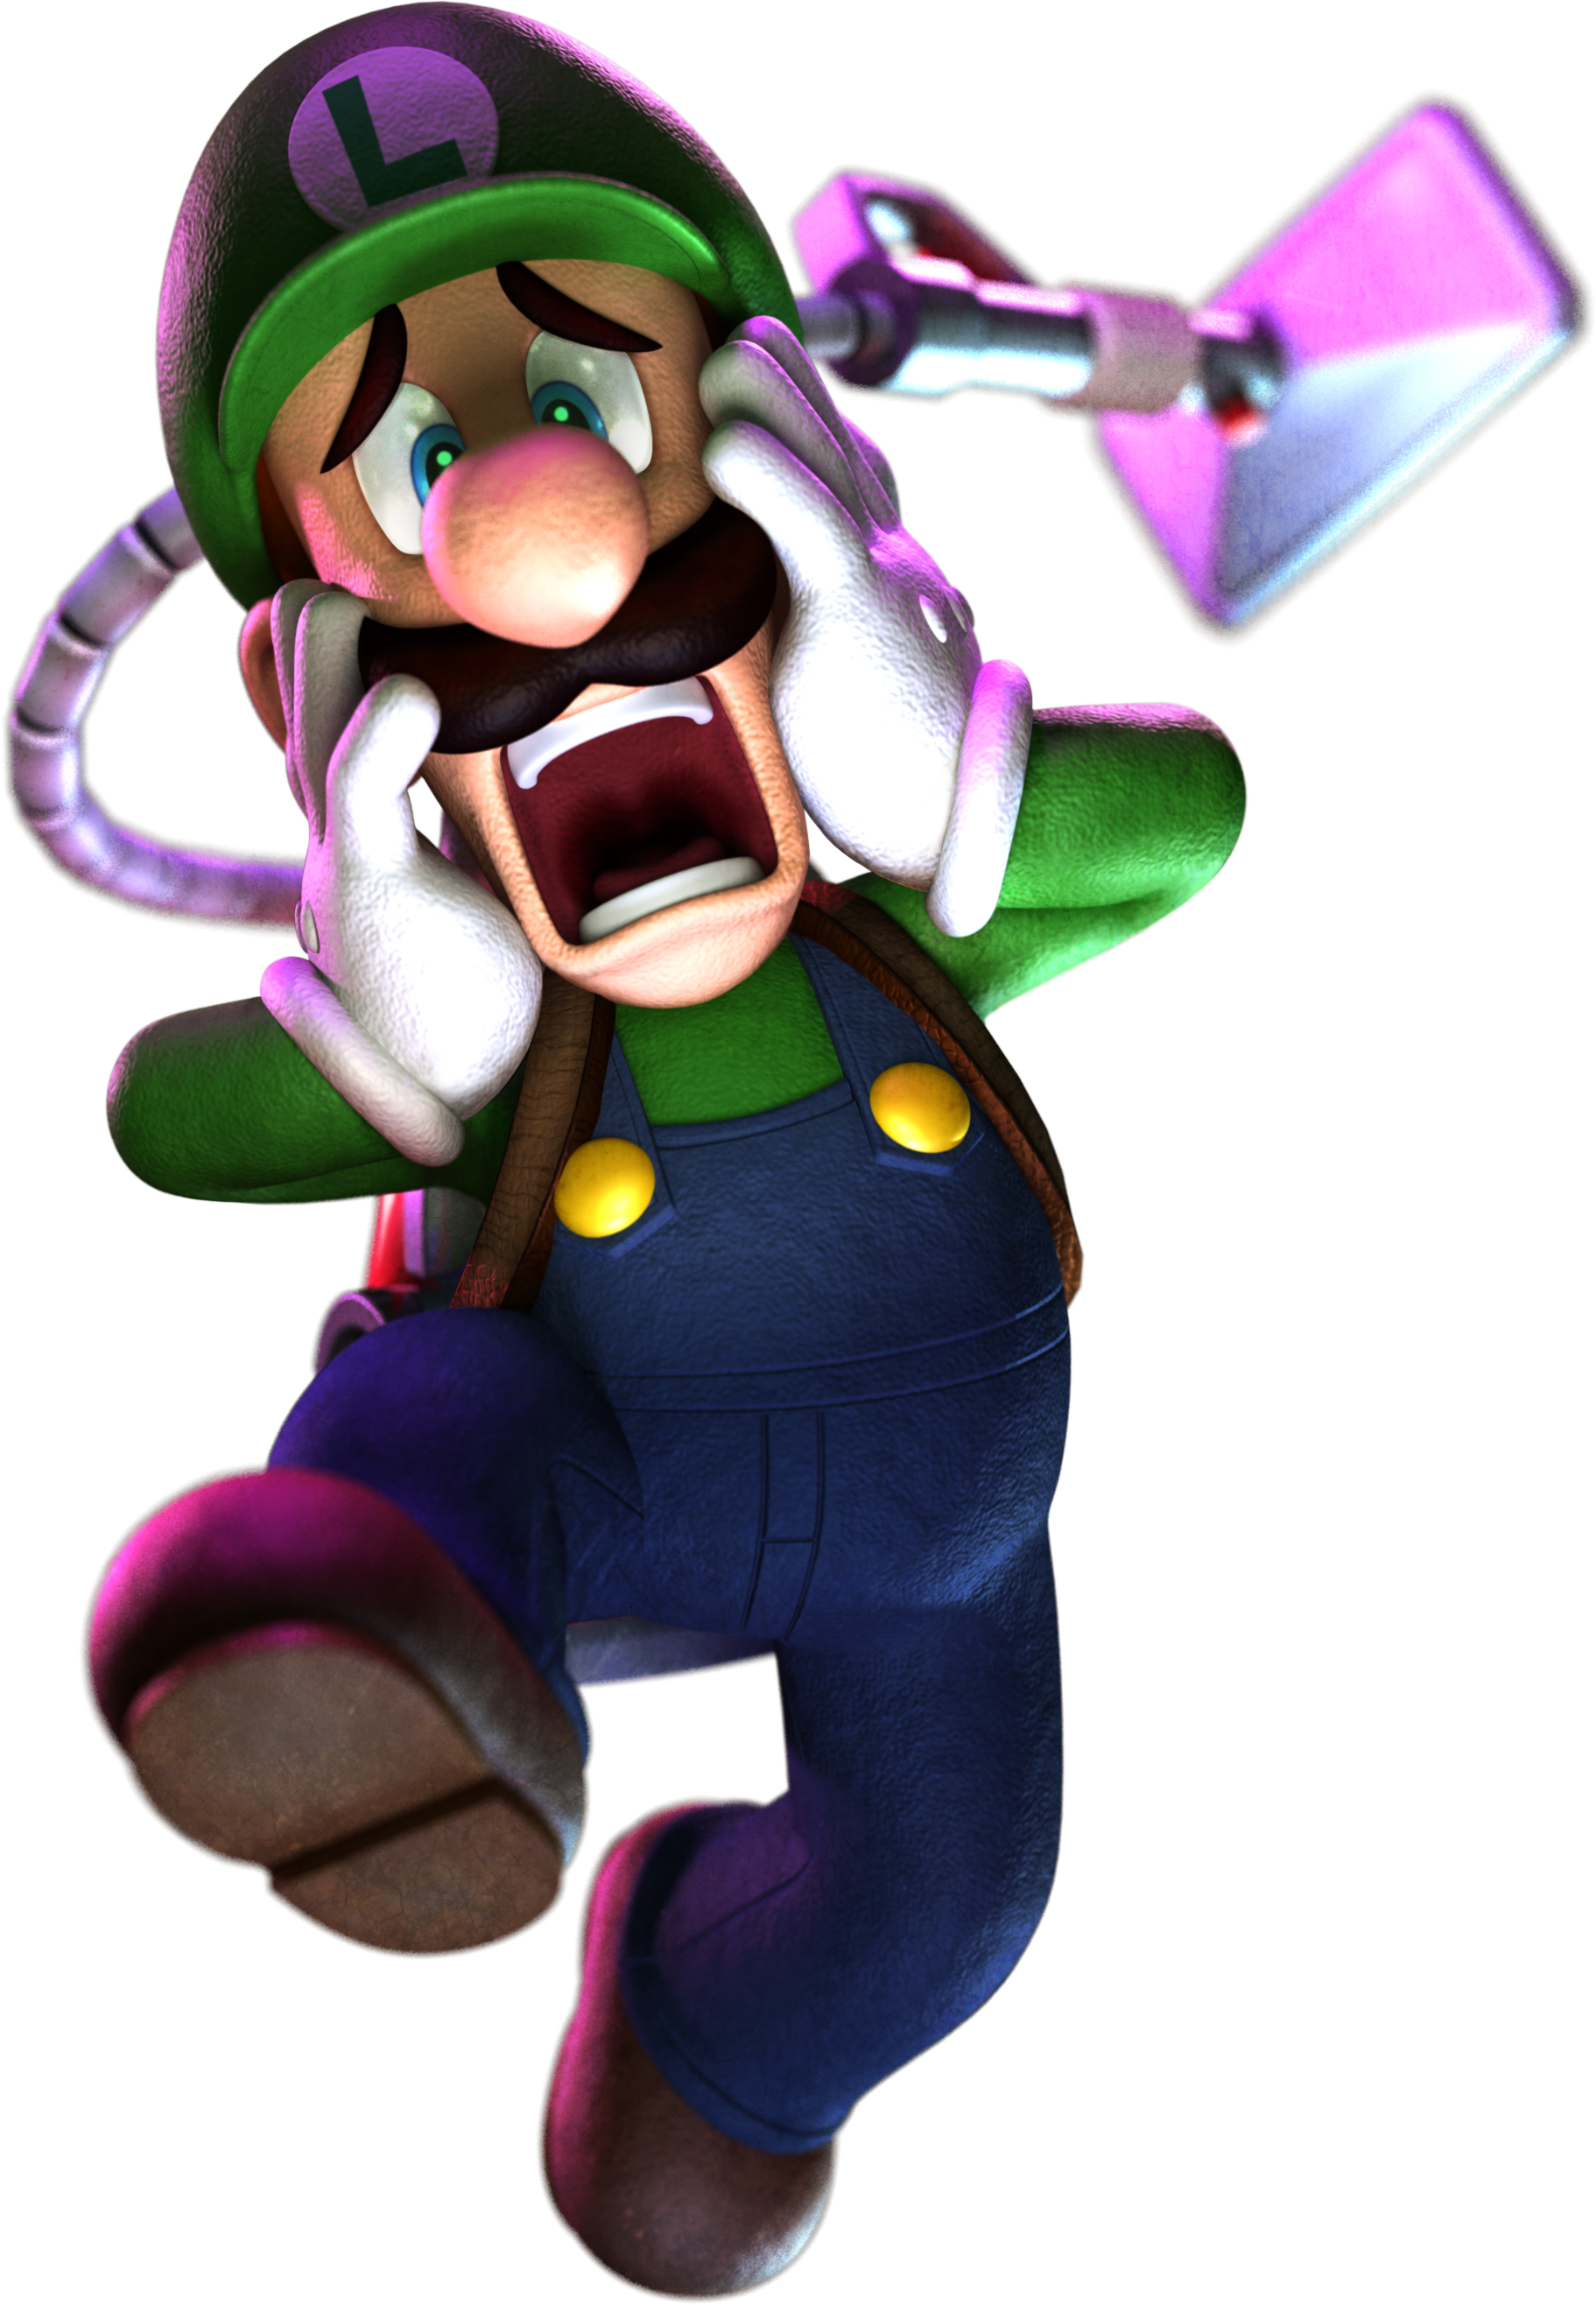 Luigis mansion png. Image lmdm luigi scared